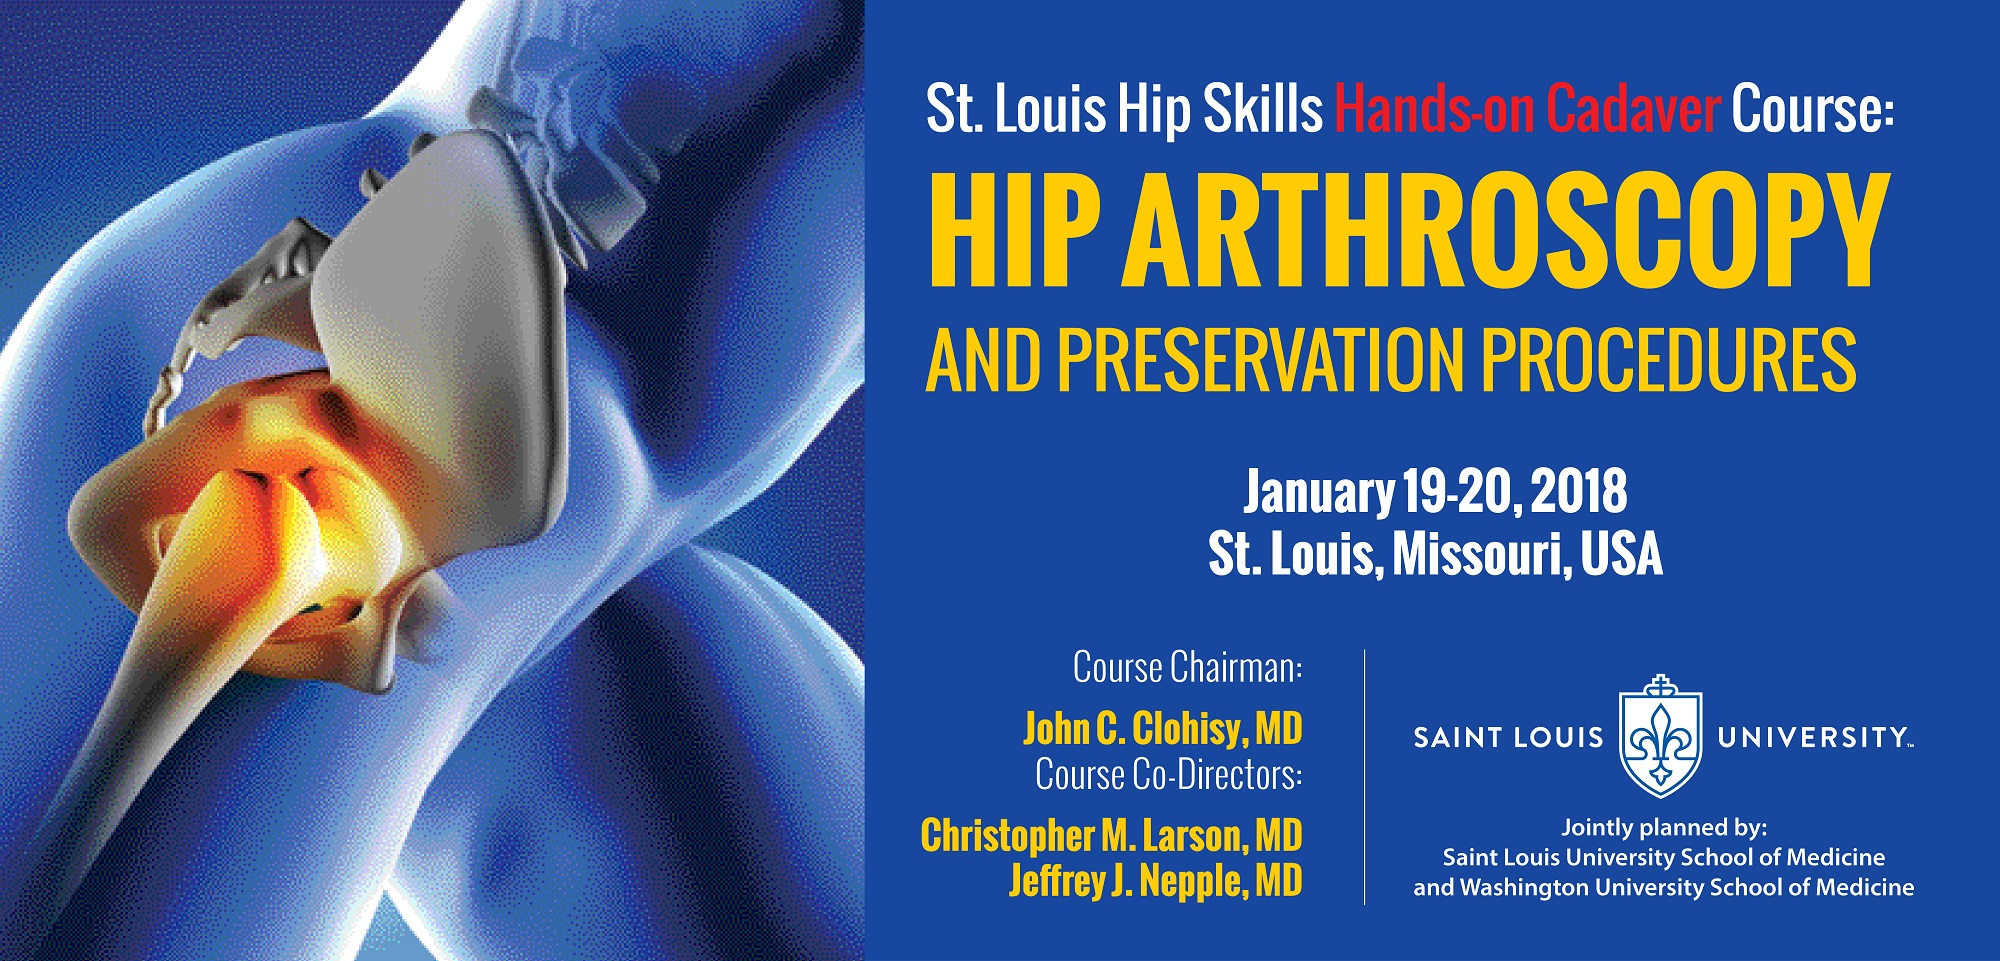 St. Louis Hip Skills Course: Hip Arthroscopy and Preservation  Procedures